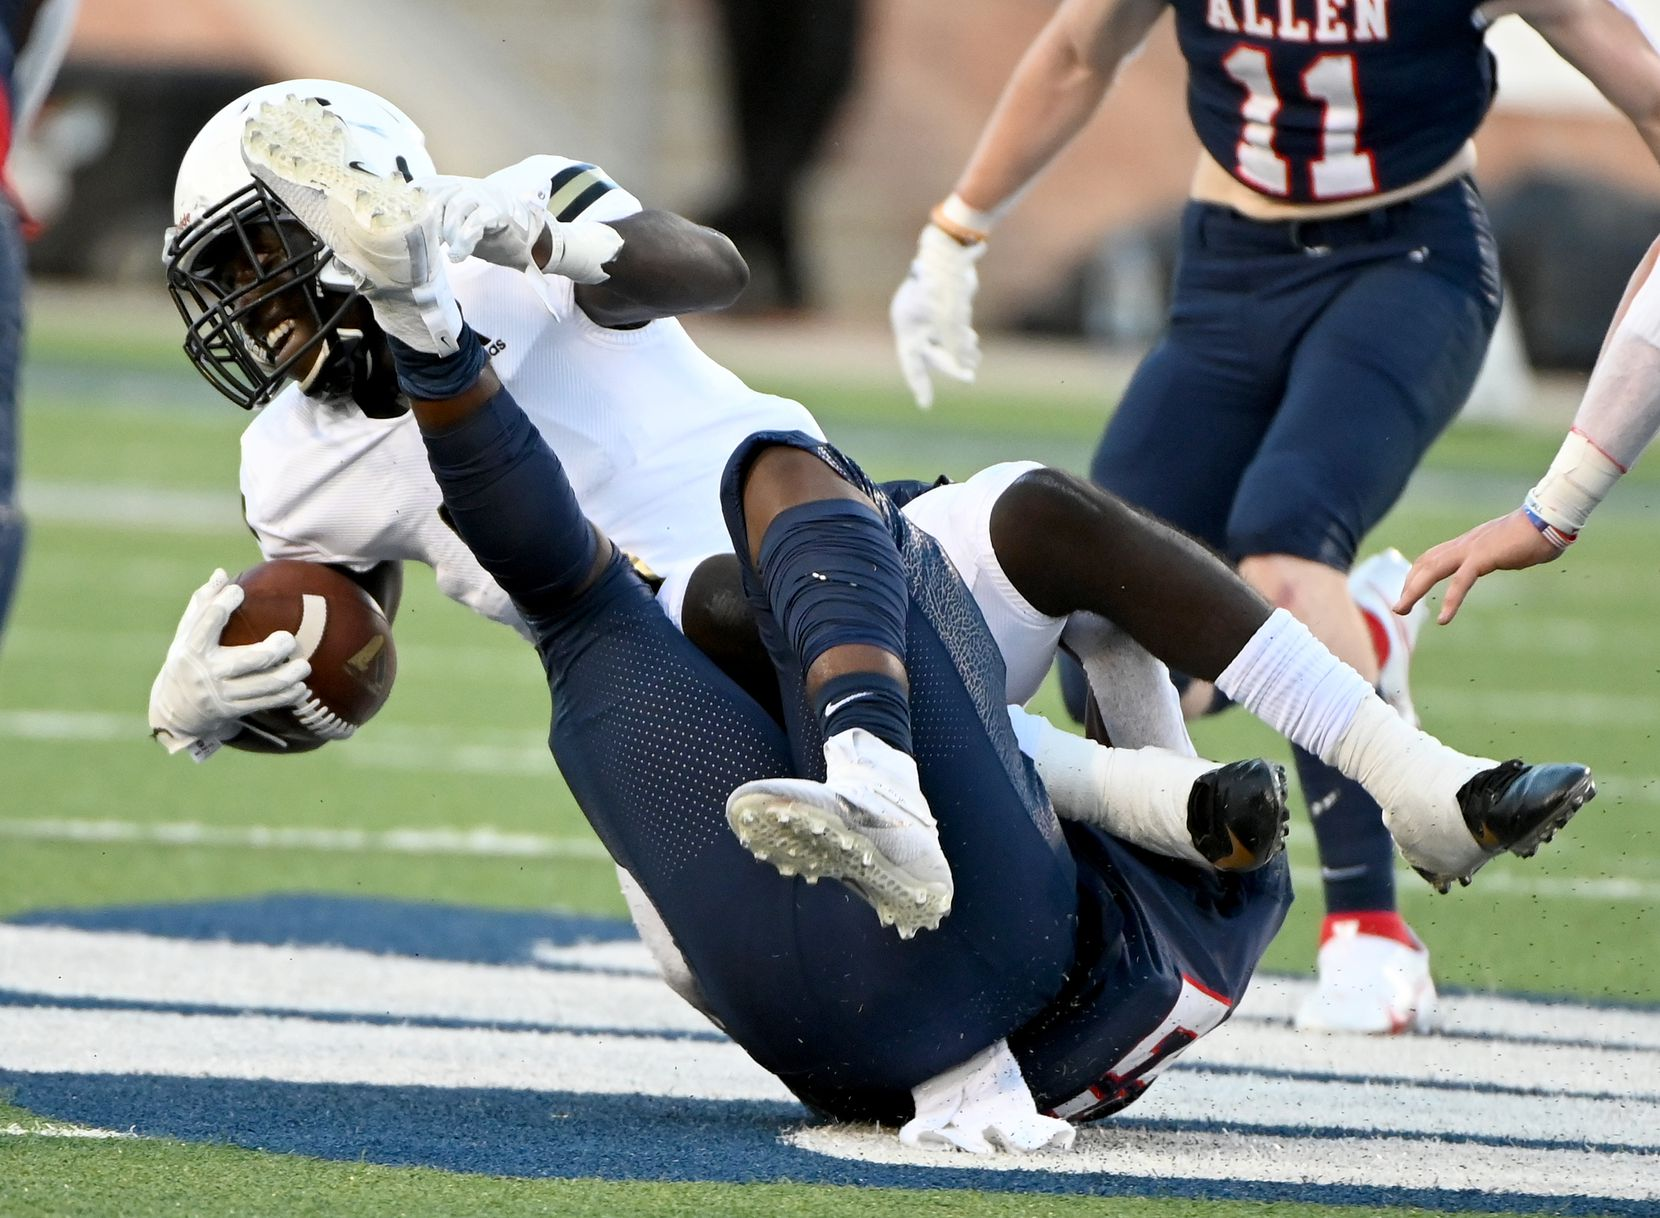 Plano East Ismail Mahdi, in white, is tackled by Allen's Michael Momoh in the first half during a high school football game between Plano East and Allen, Friday, Aug. 27, 2021, in Allen, Texas. (Matt Strasen/Special Contributor)